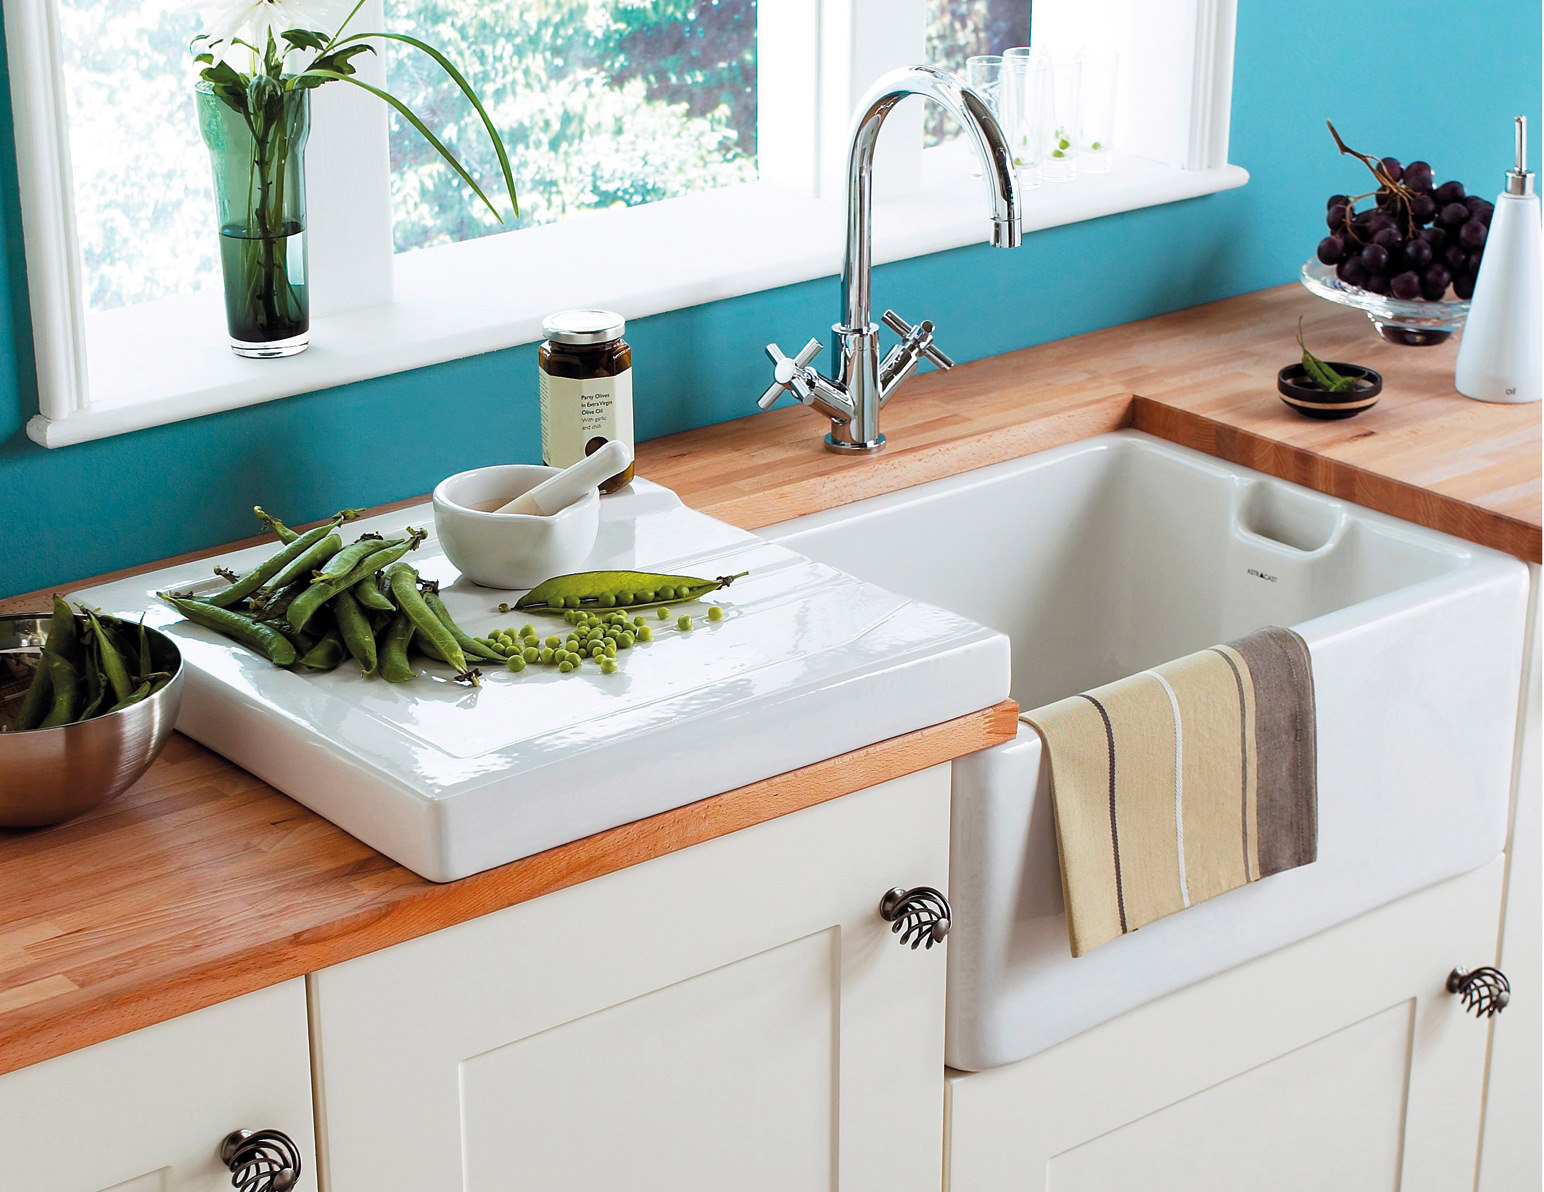 fireclay kitchen sink espresso cabinets astracast belfast 1.0 bowl ceramic gloss white sit-in ...